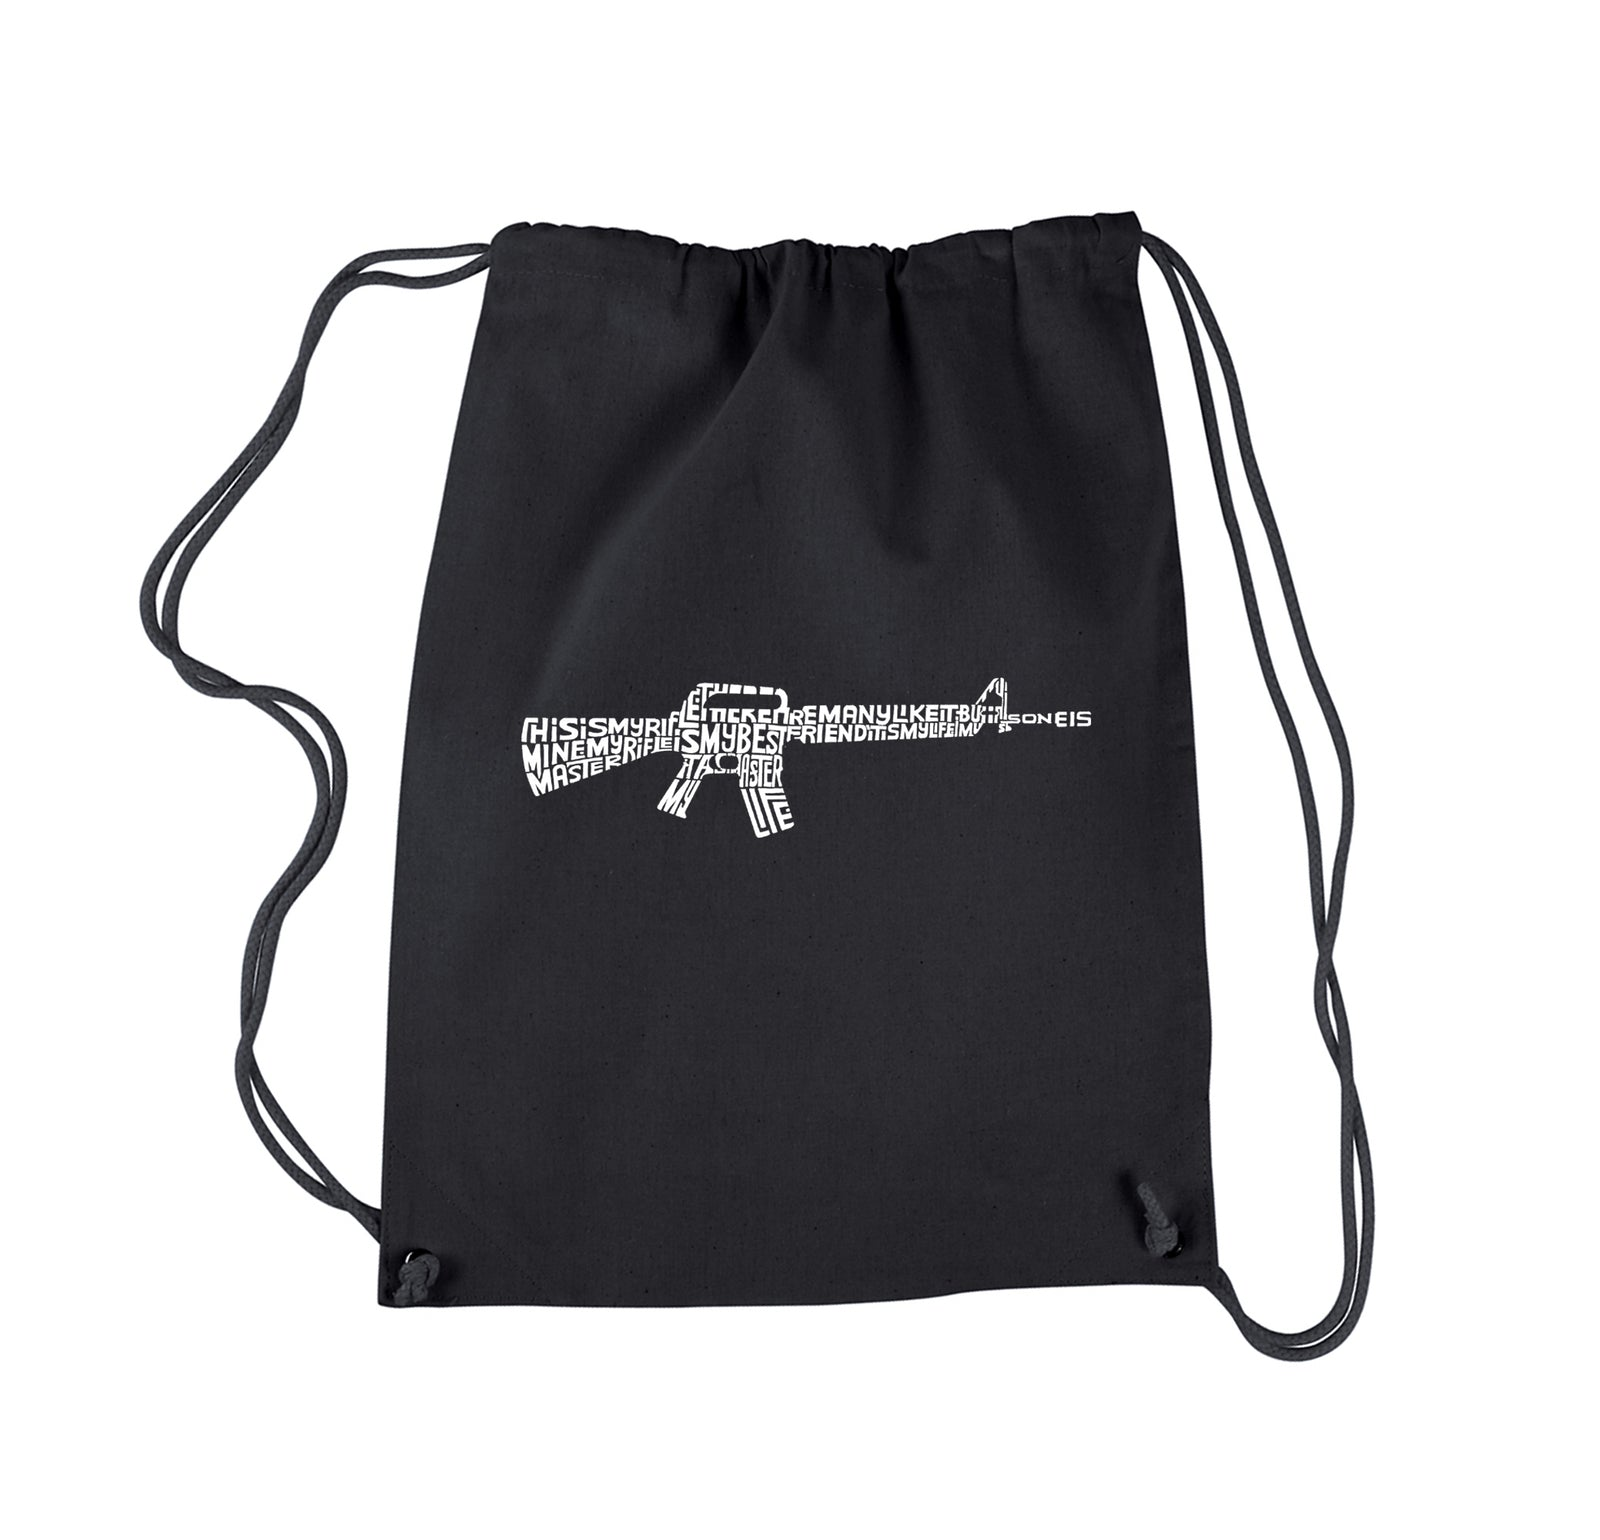 Drawstring Backpack - RIFLEMANS CREED